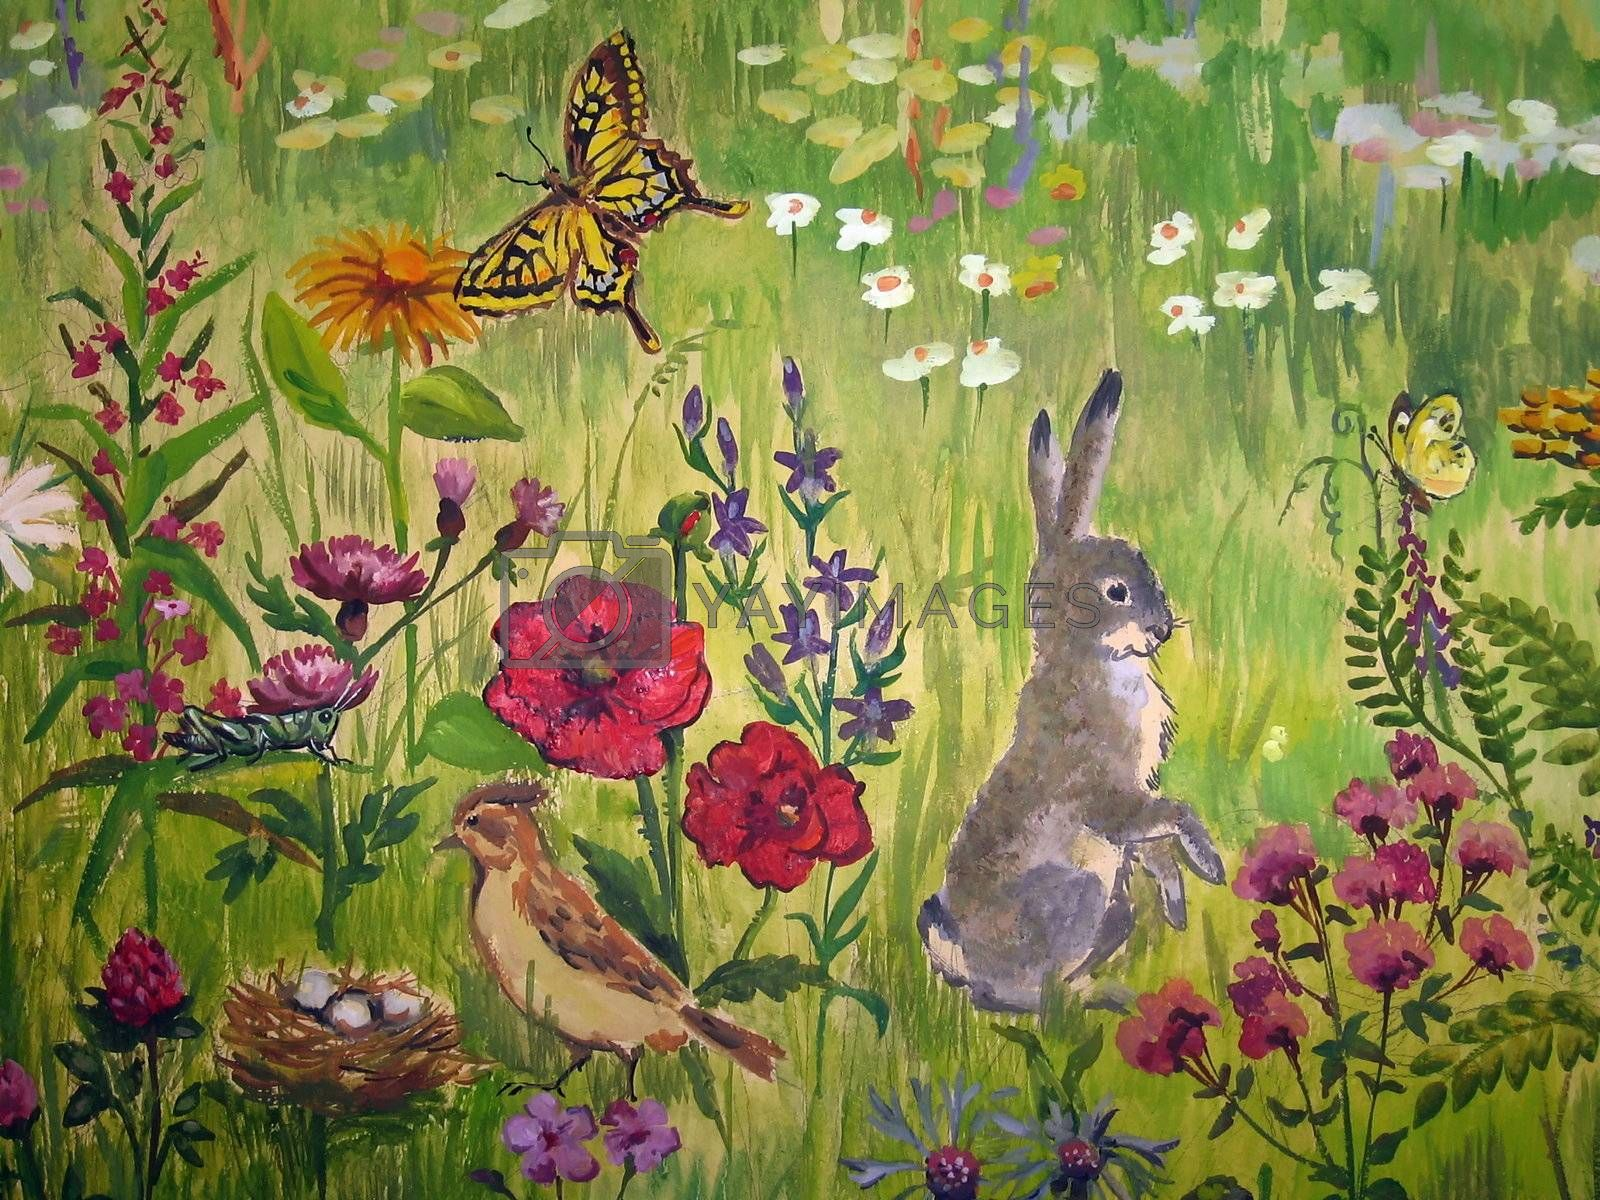 Painted picture with various meadow living animals